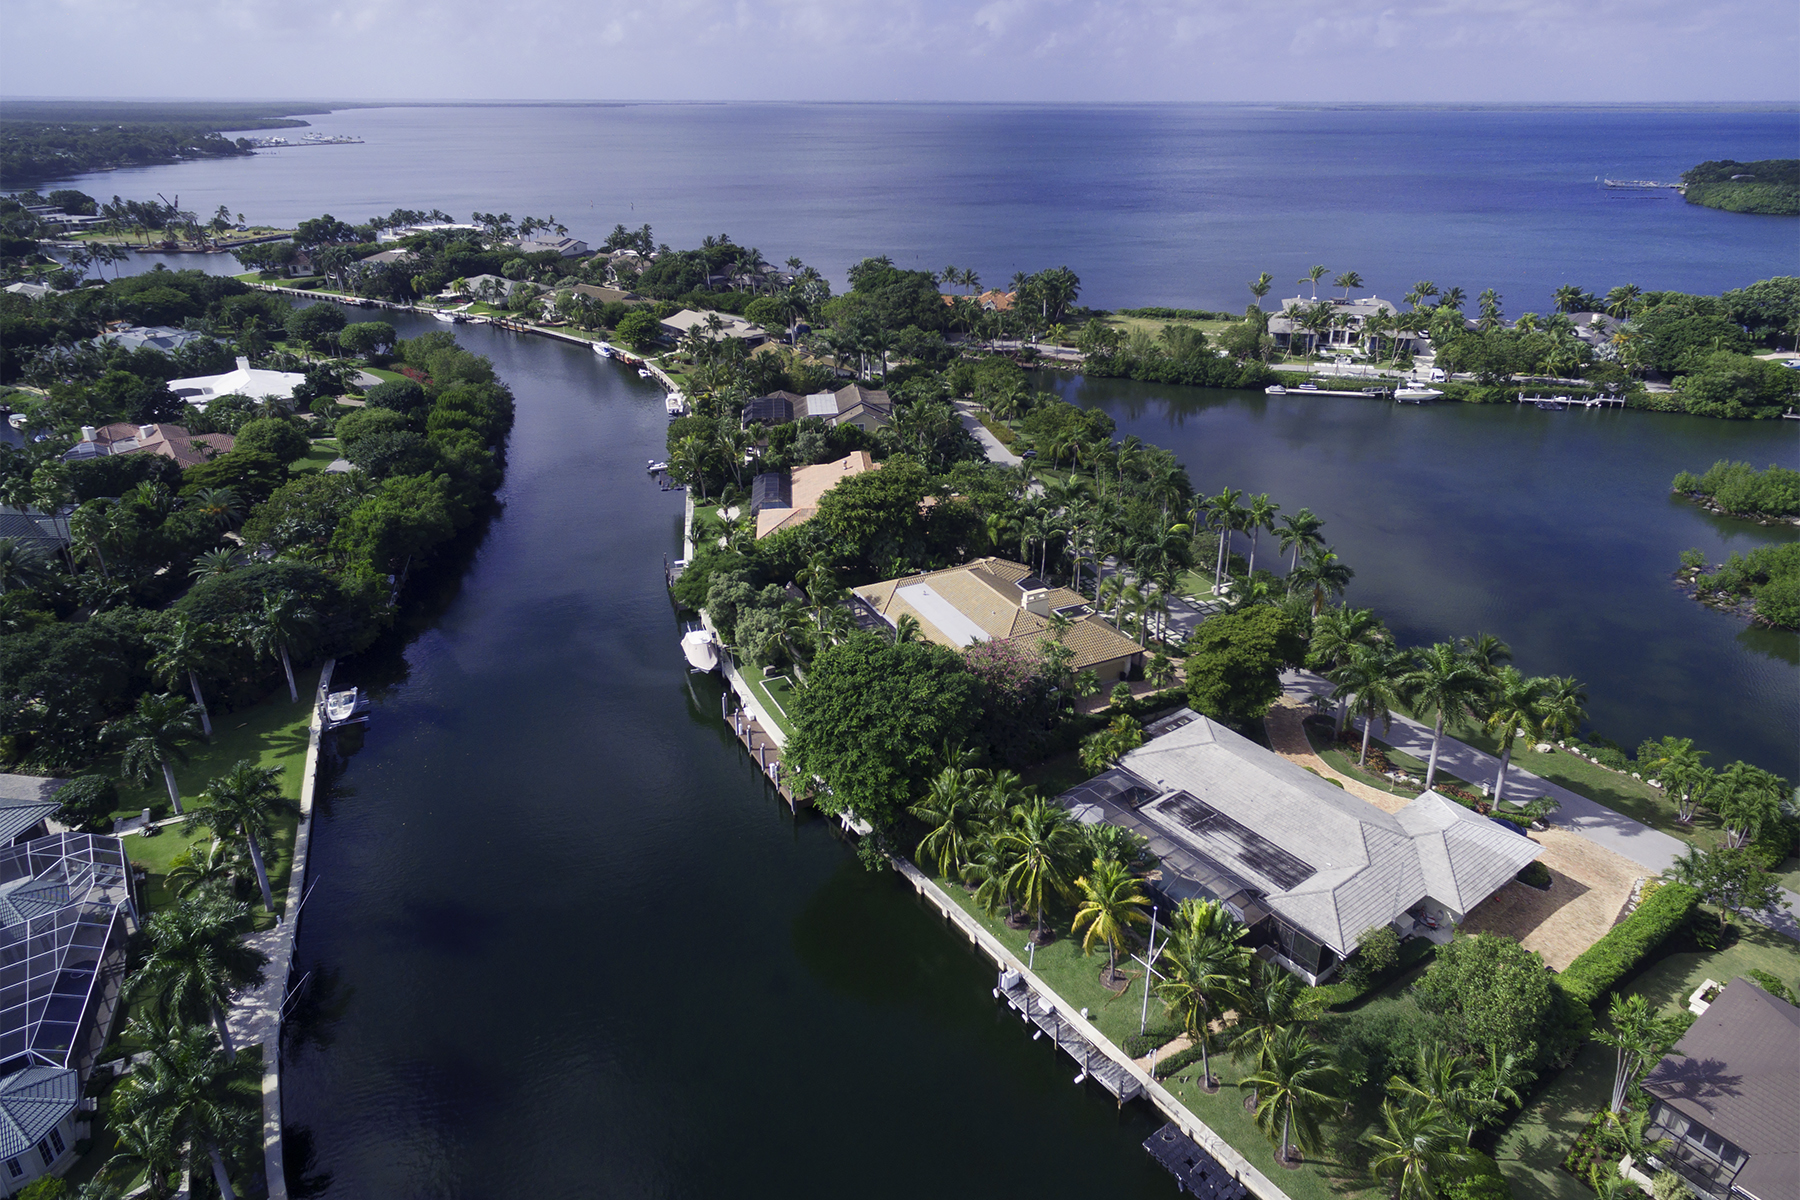 Moradia para Venda às Fabulous Waterfront Location at Ocean Reef 32 East Snapper Point Drive Ocean Reef Community, Key Largo, Florida, 33037 Estados Unidos